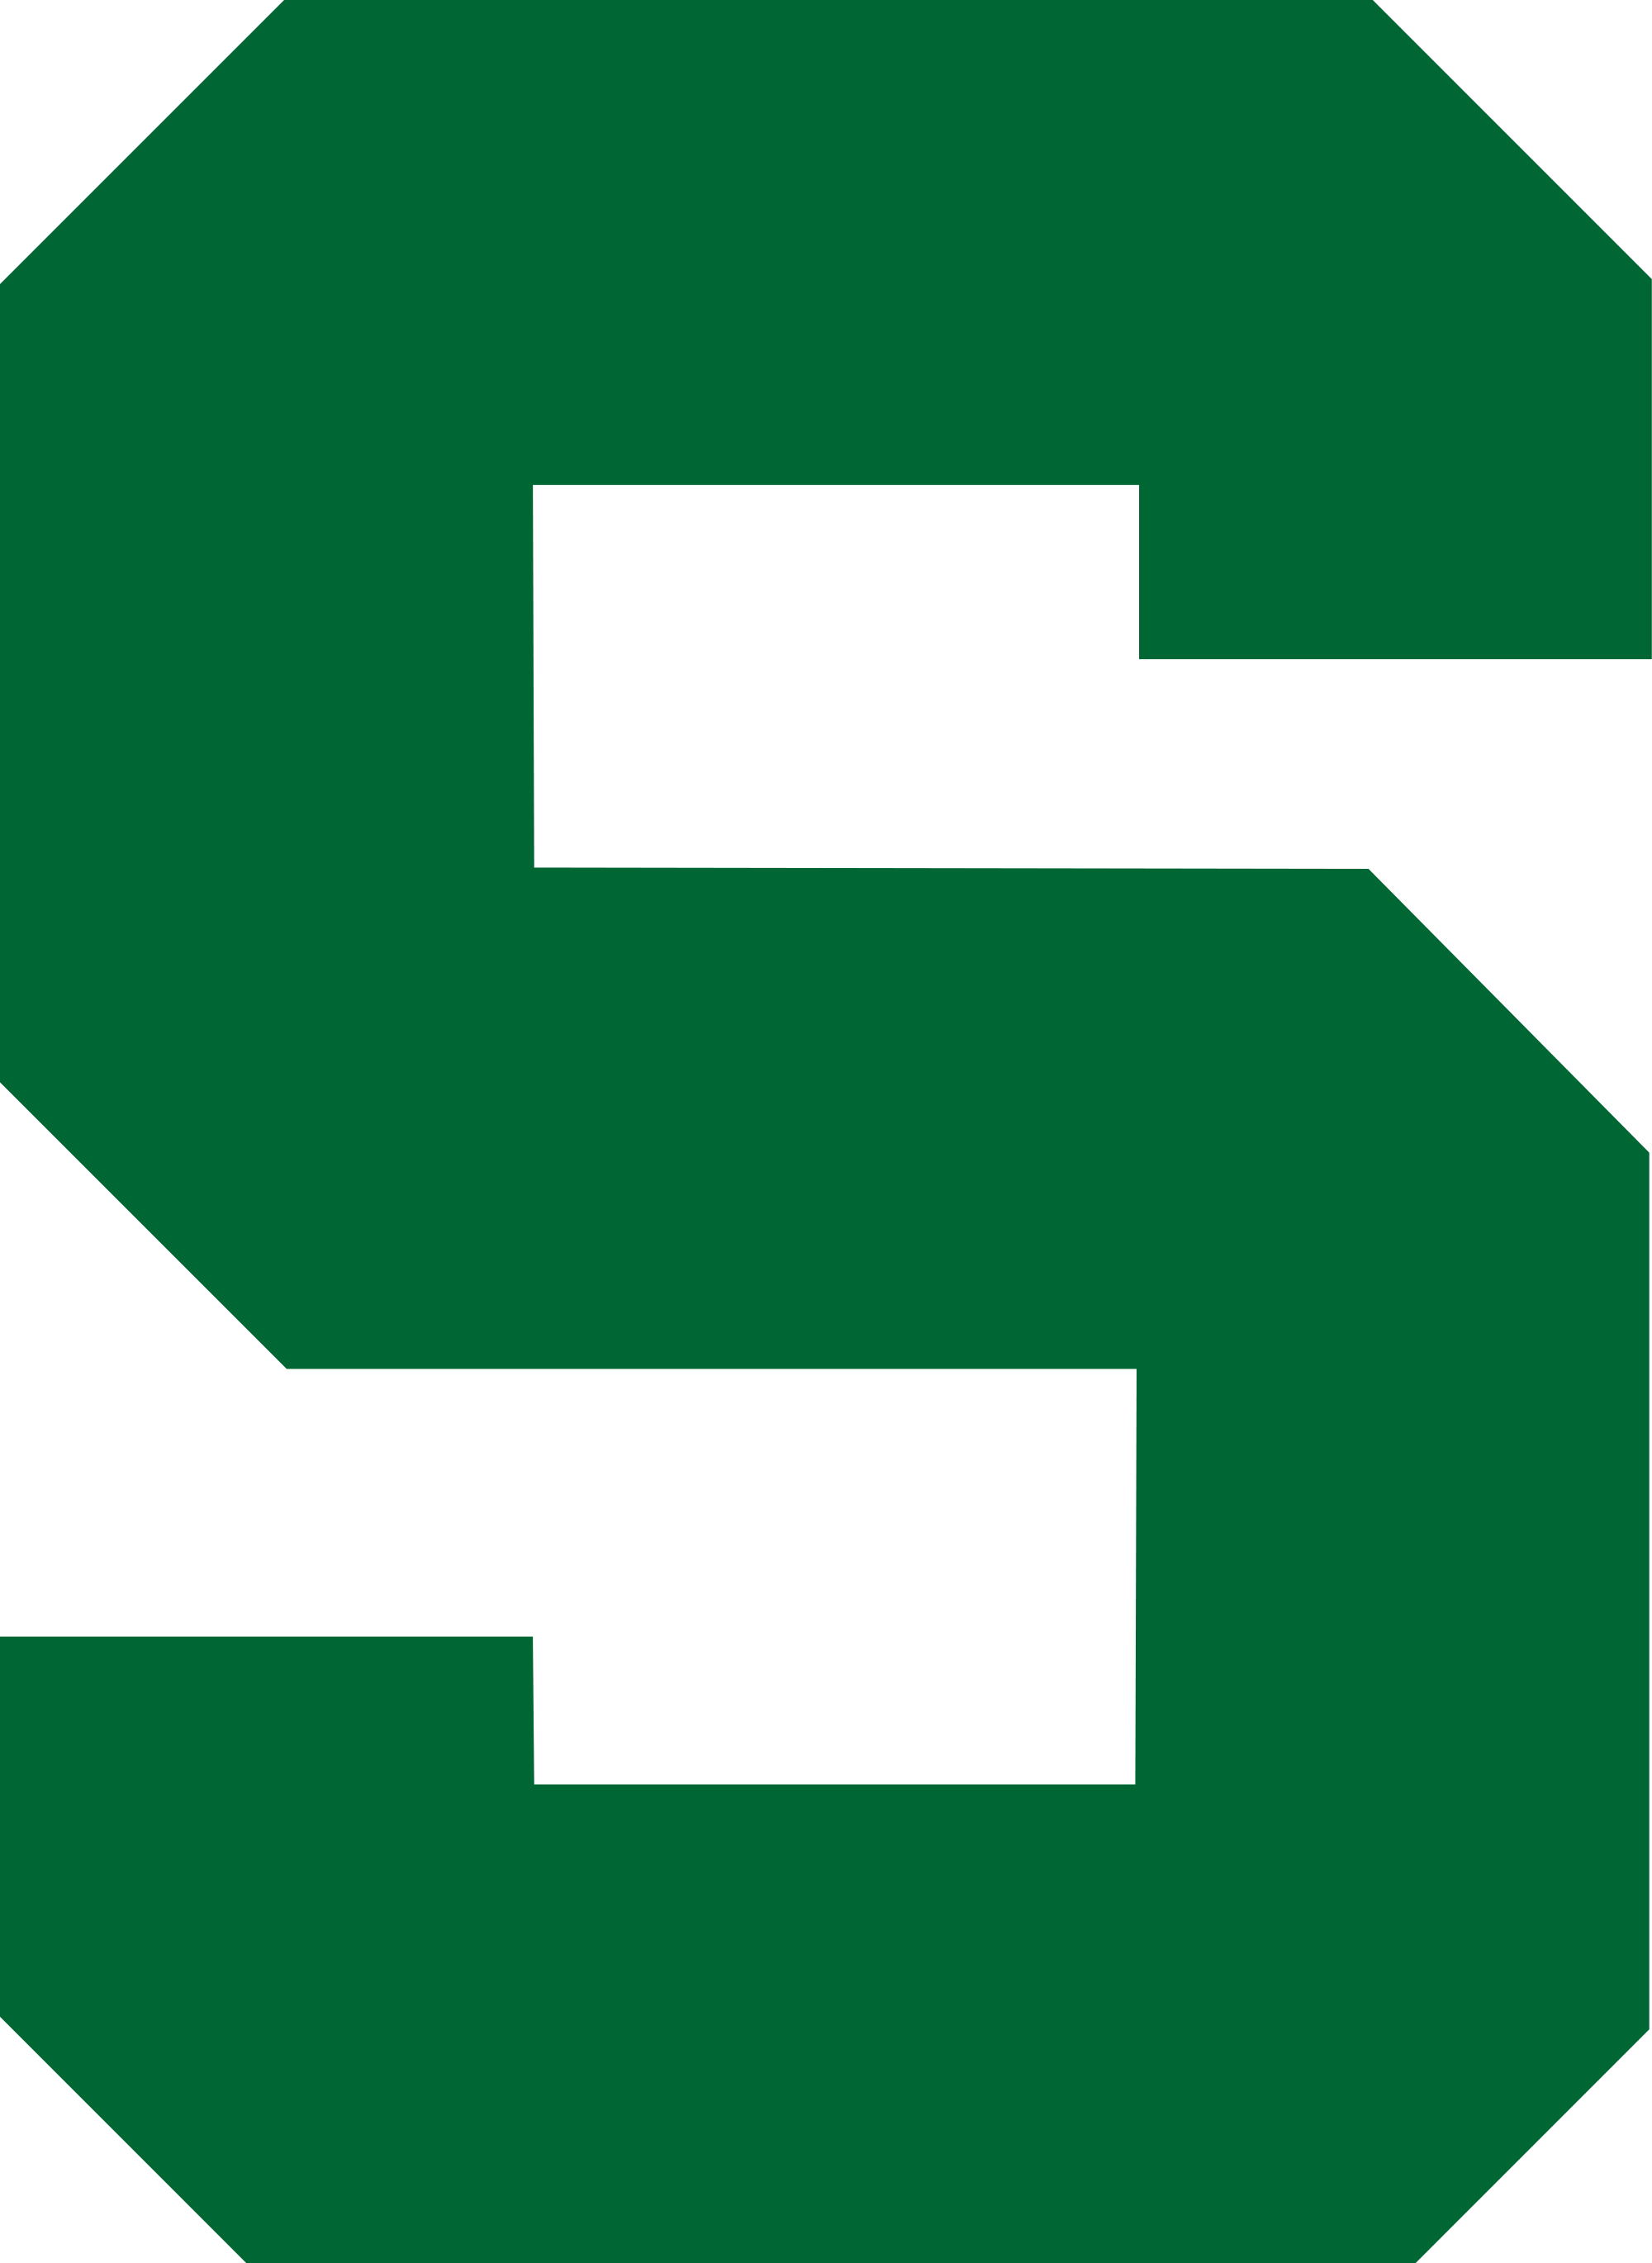 MICHIGAN STATE S LOGO - ClipArt Best